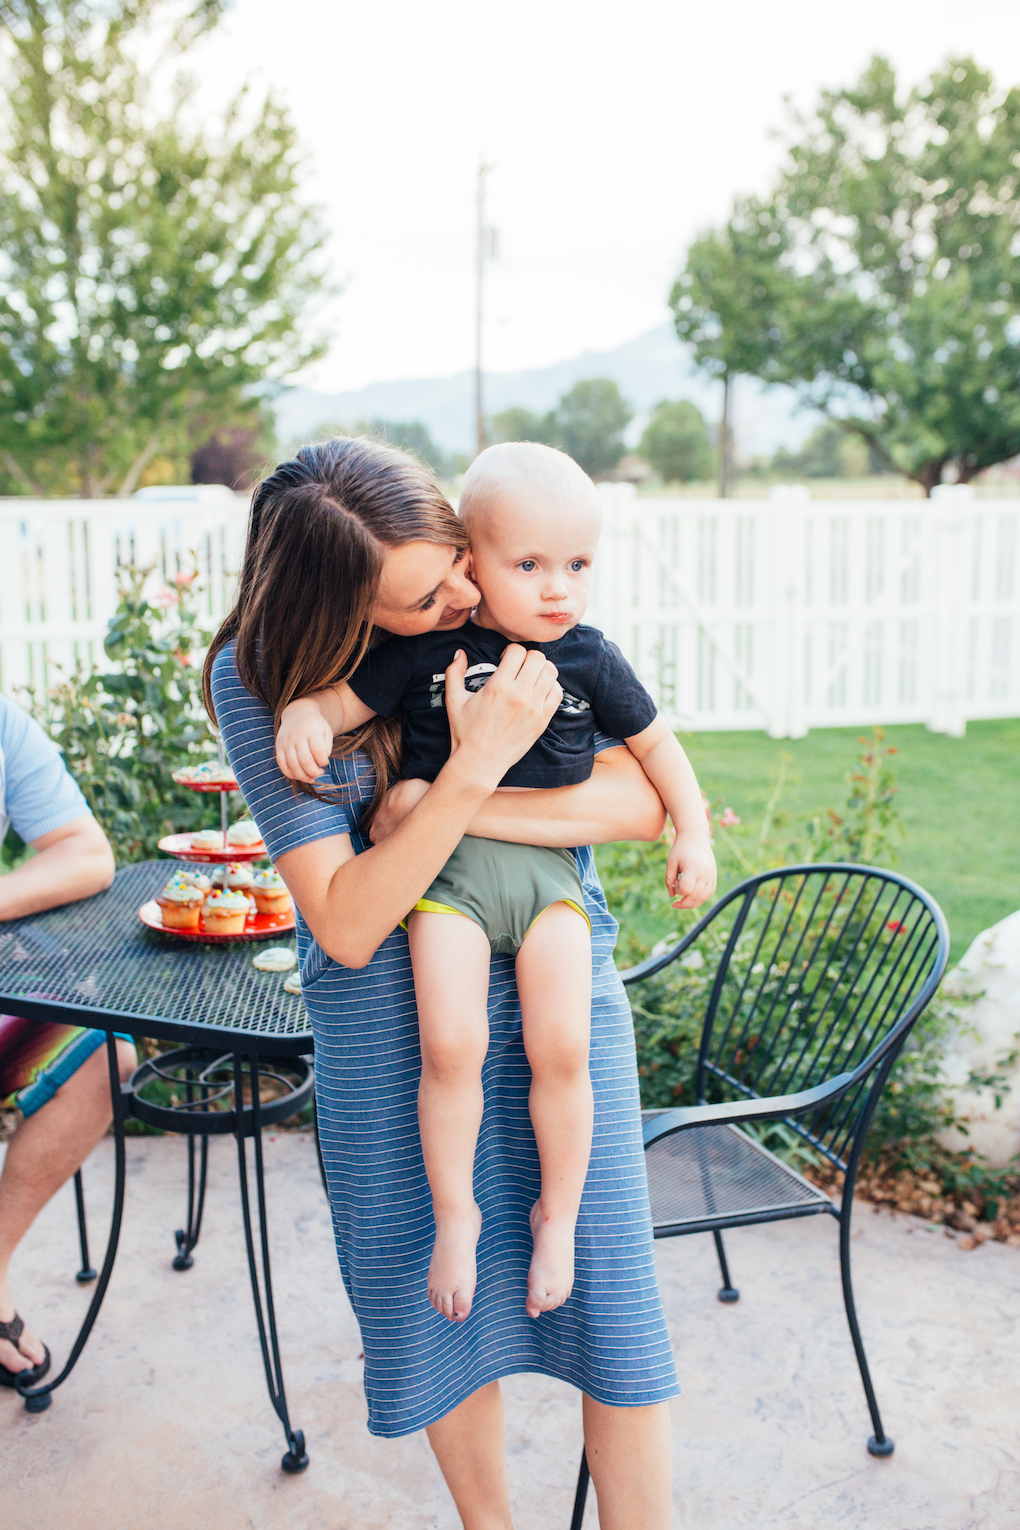 KINGS HAPPY UN-BIRTHDAY - KIDS BALL PARTY by Utah blogger Dani Marie - Mom hugging toddler in blue stripe dress and green swim shorts